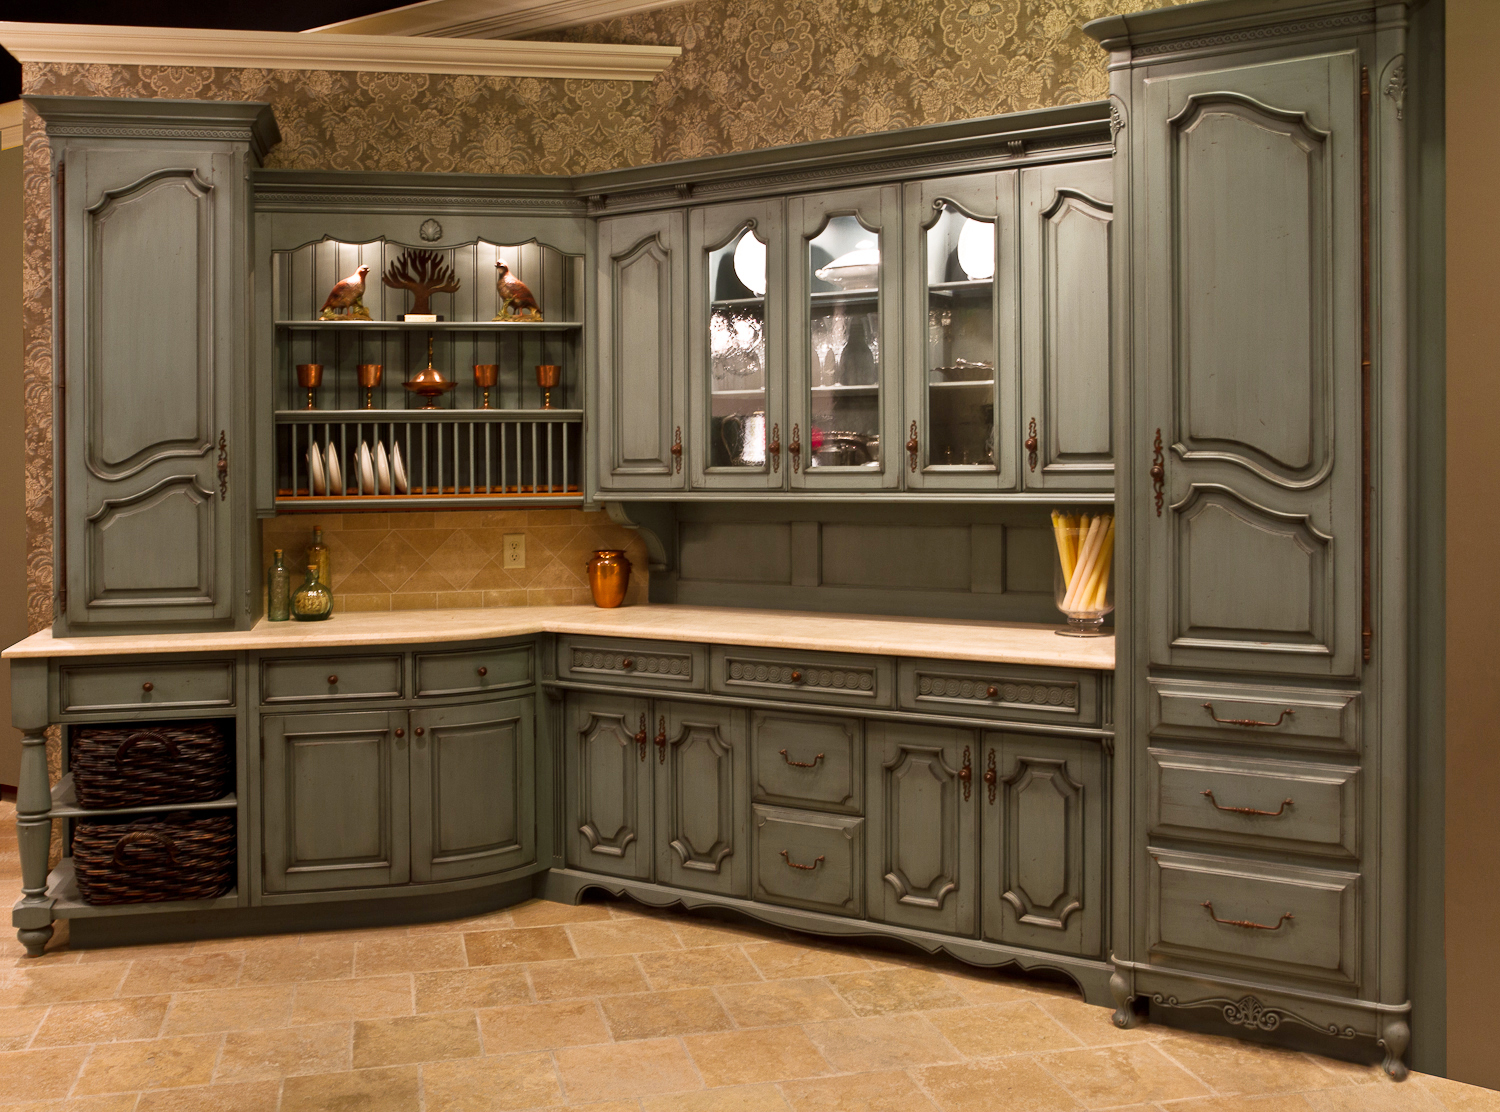 kitchen ideas honor country kitchen ideas showing vintage